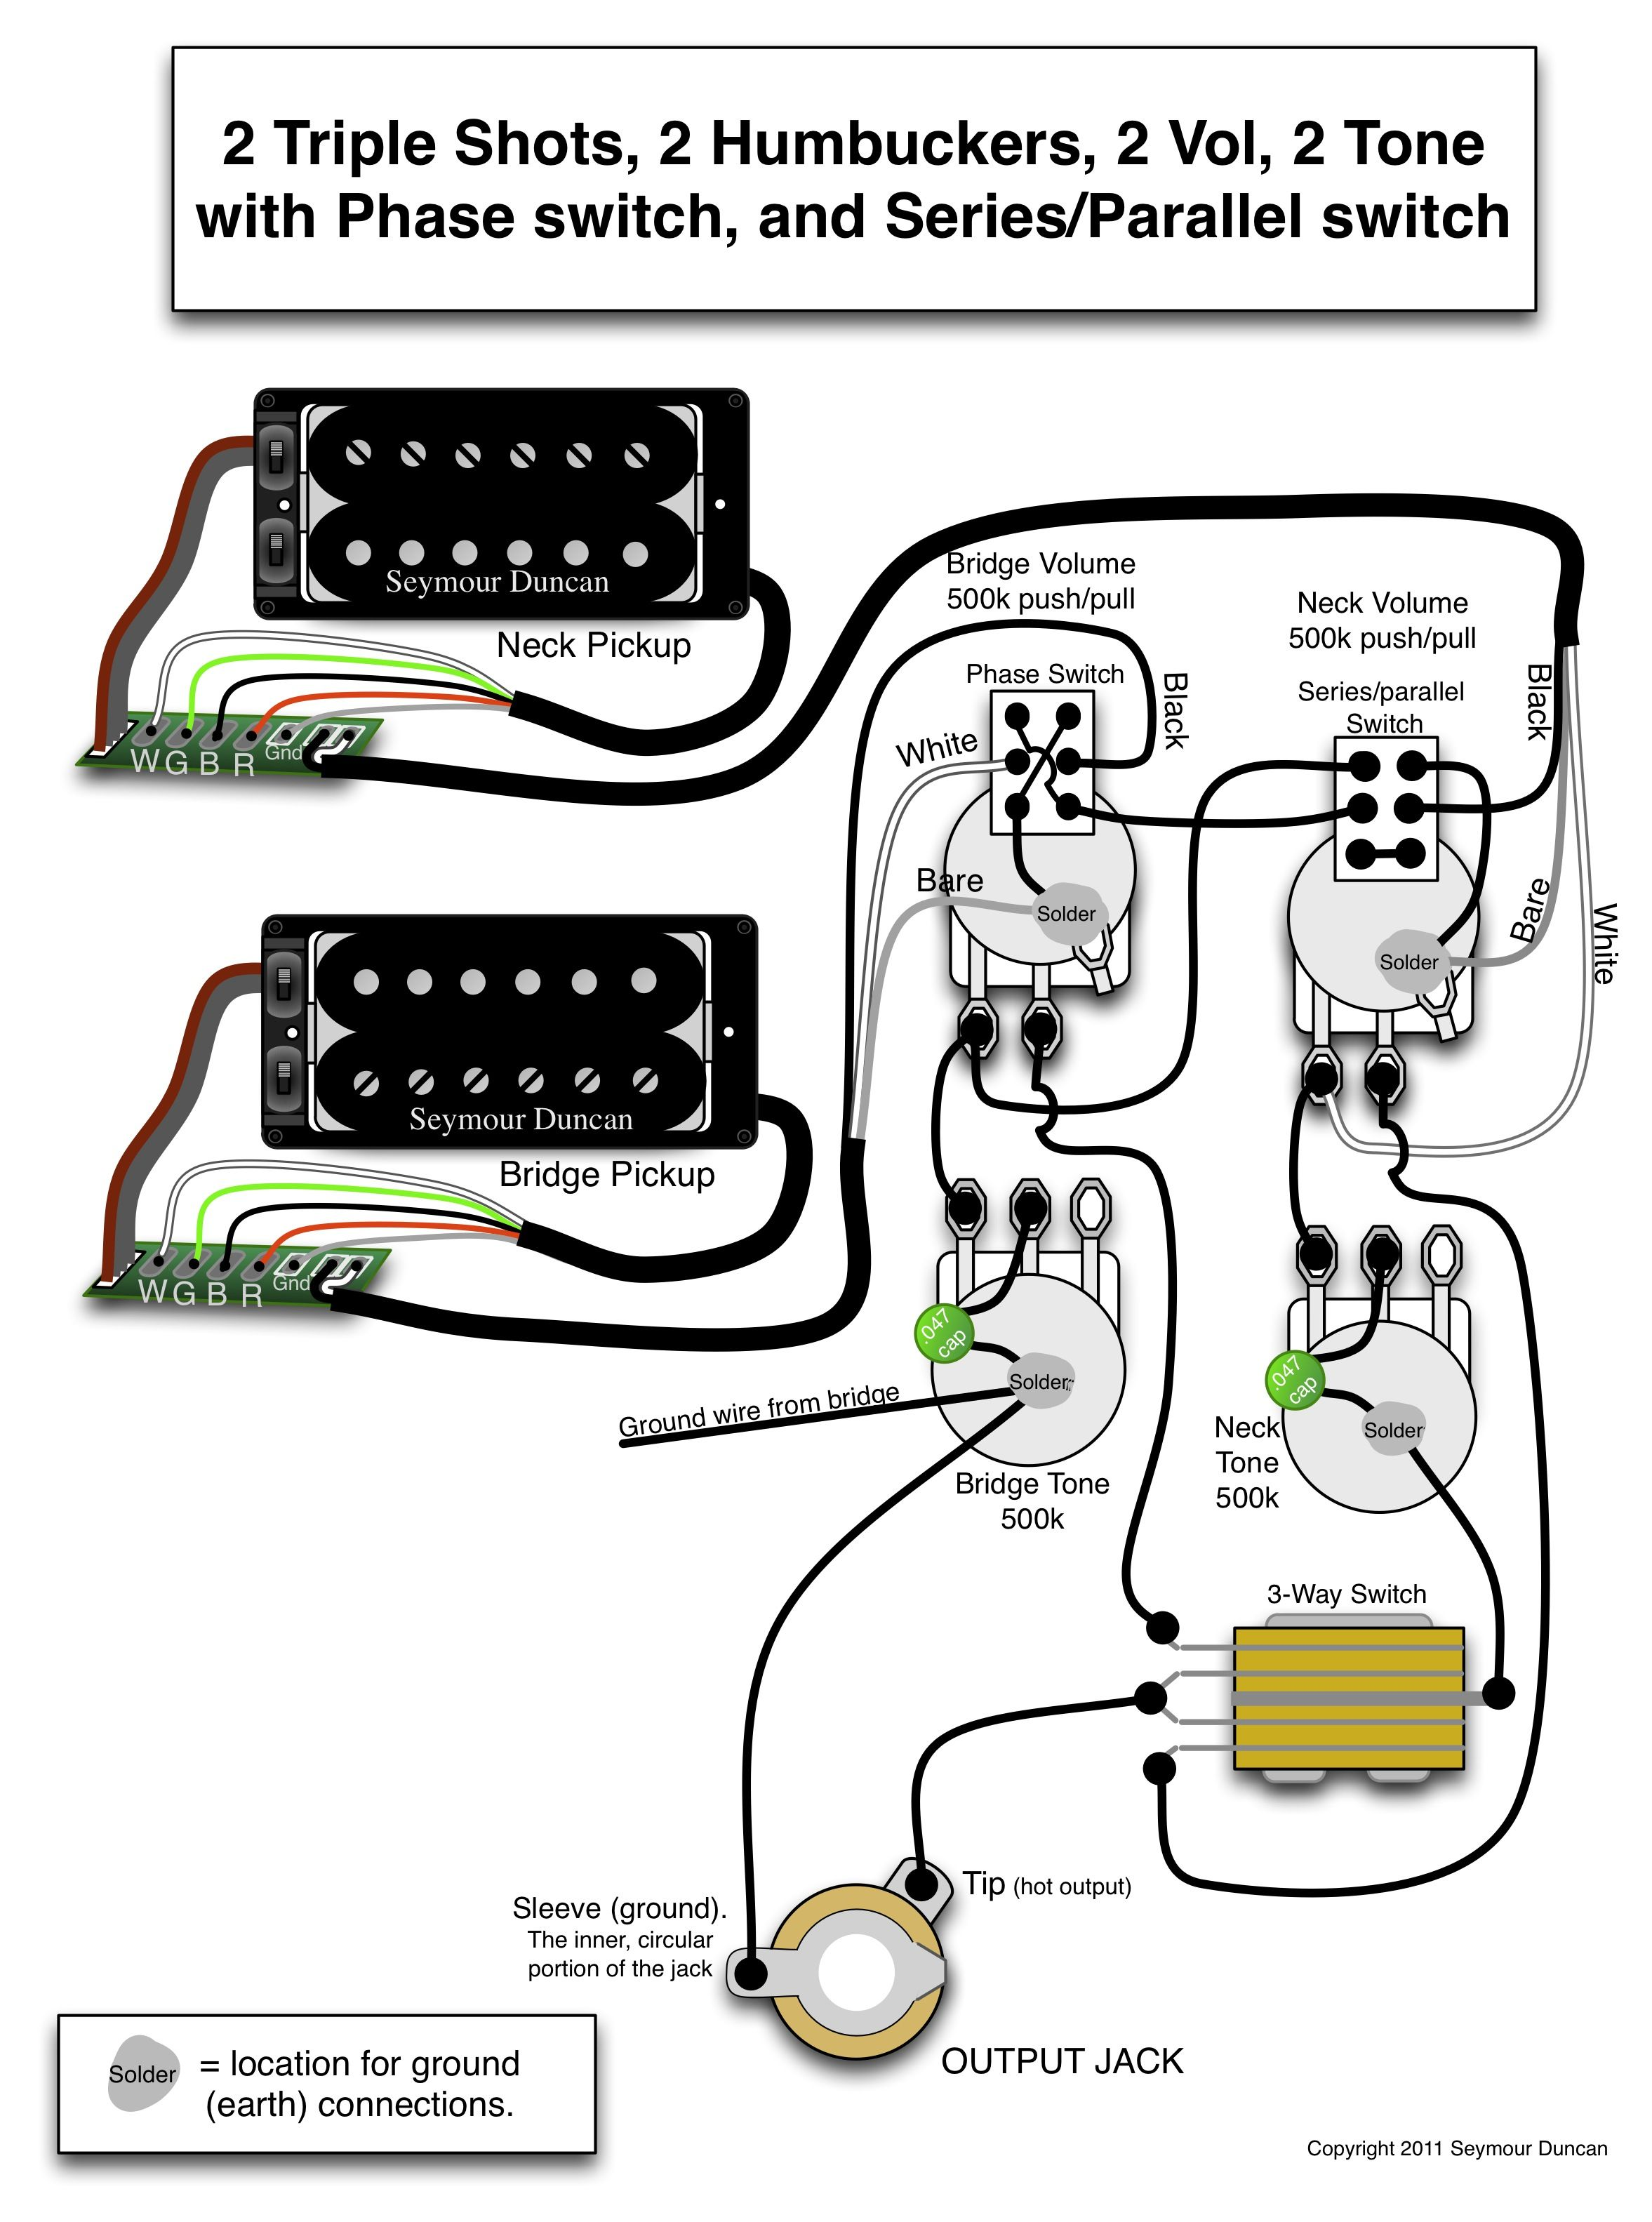 hight resolution of seymour duncan wiring diagram 2 triple shots 2 humbuckers 2 vol 2